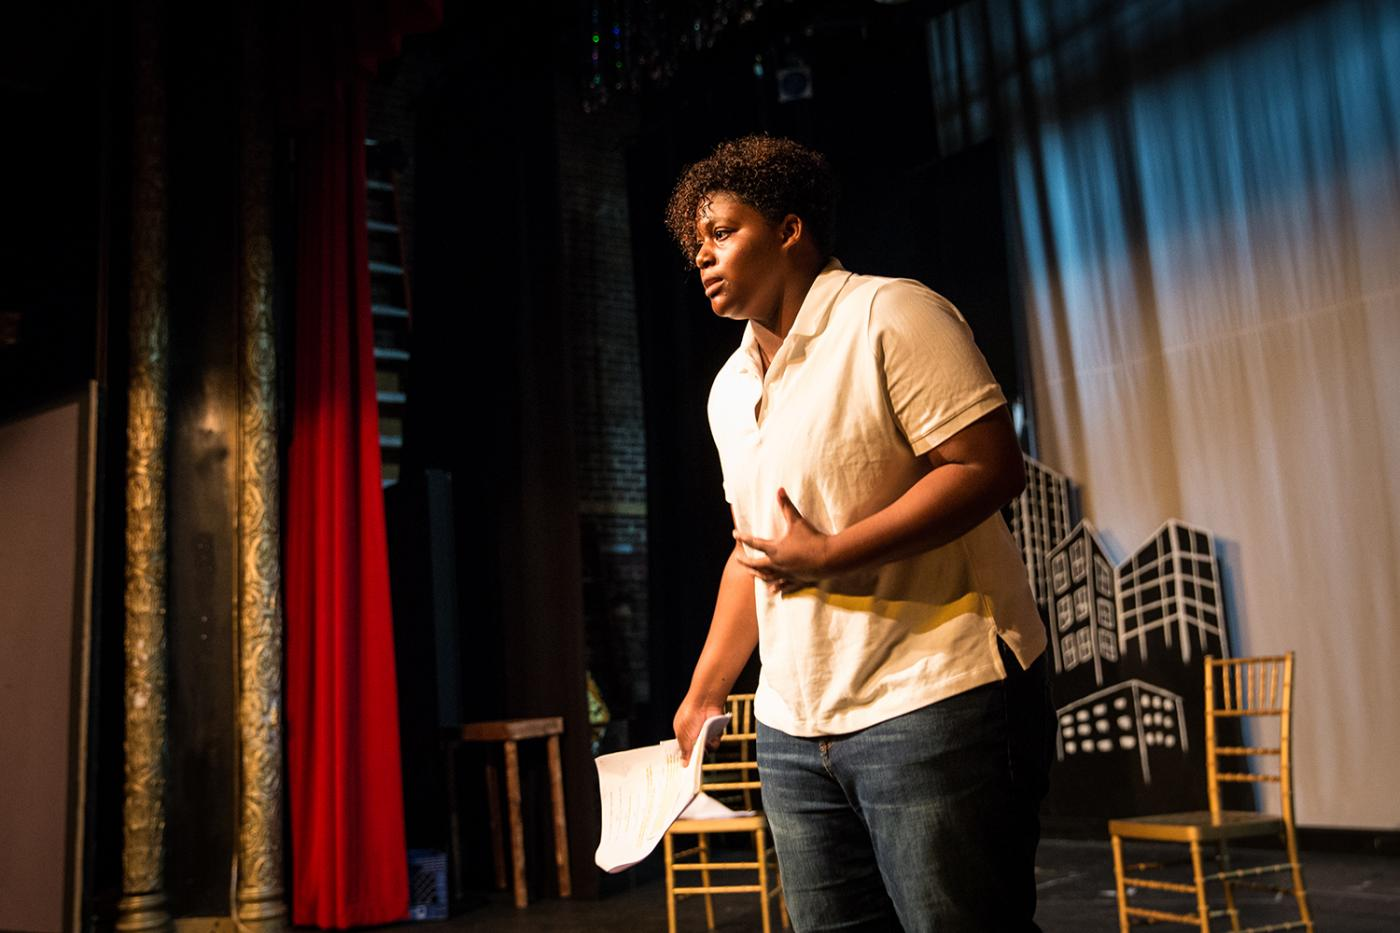 A young person delivers an impassioned speech on a stage, with their hand in a fist by their core.